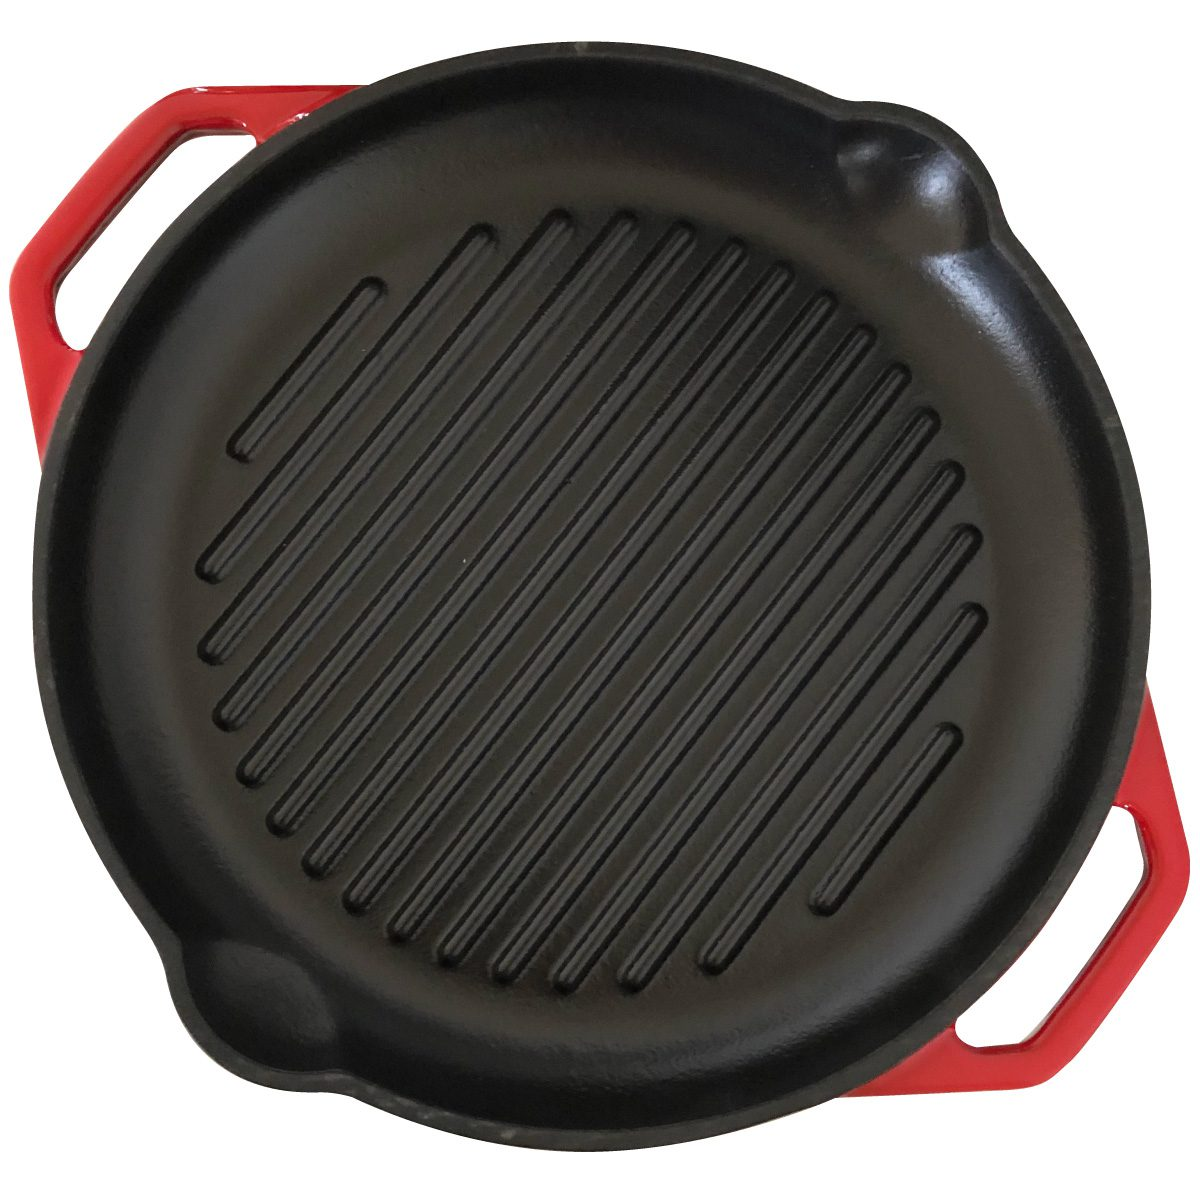 Ecoheat Griddle Plate - top view